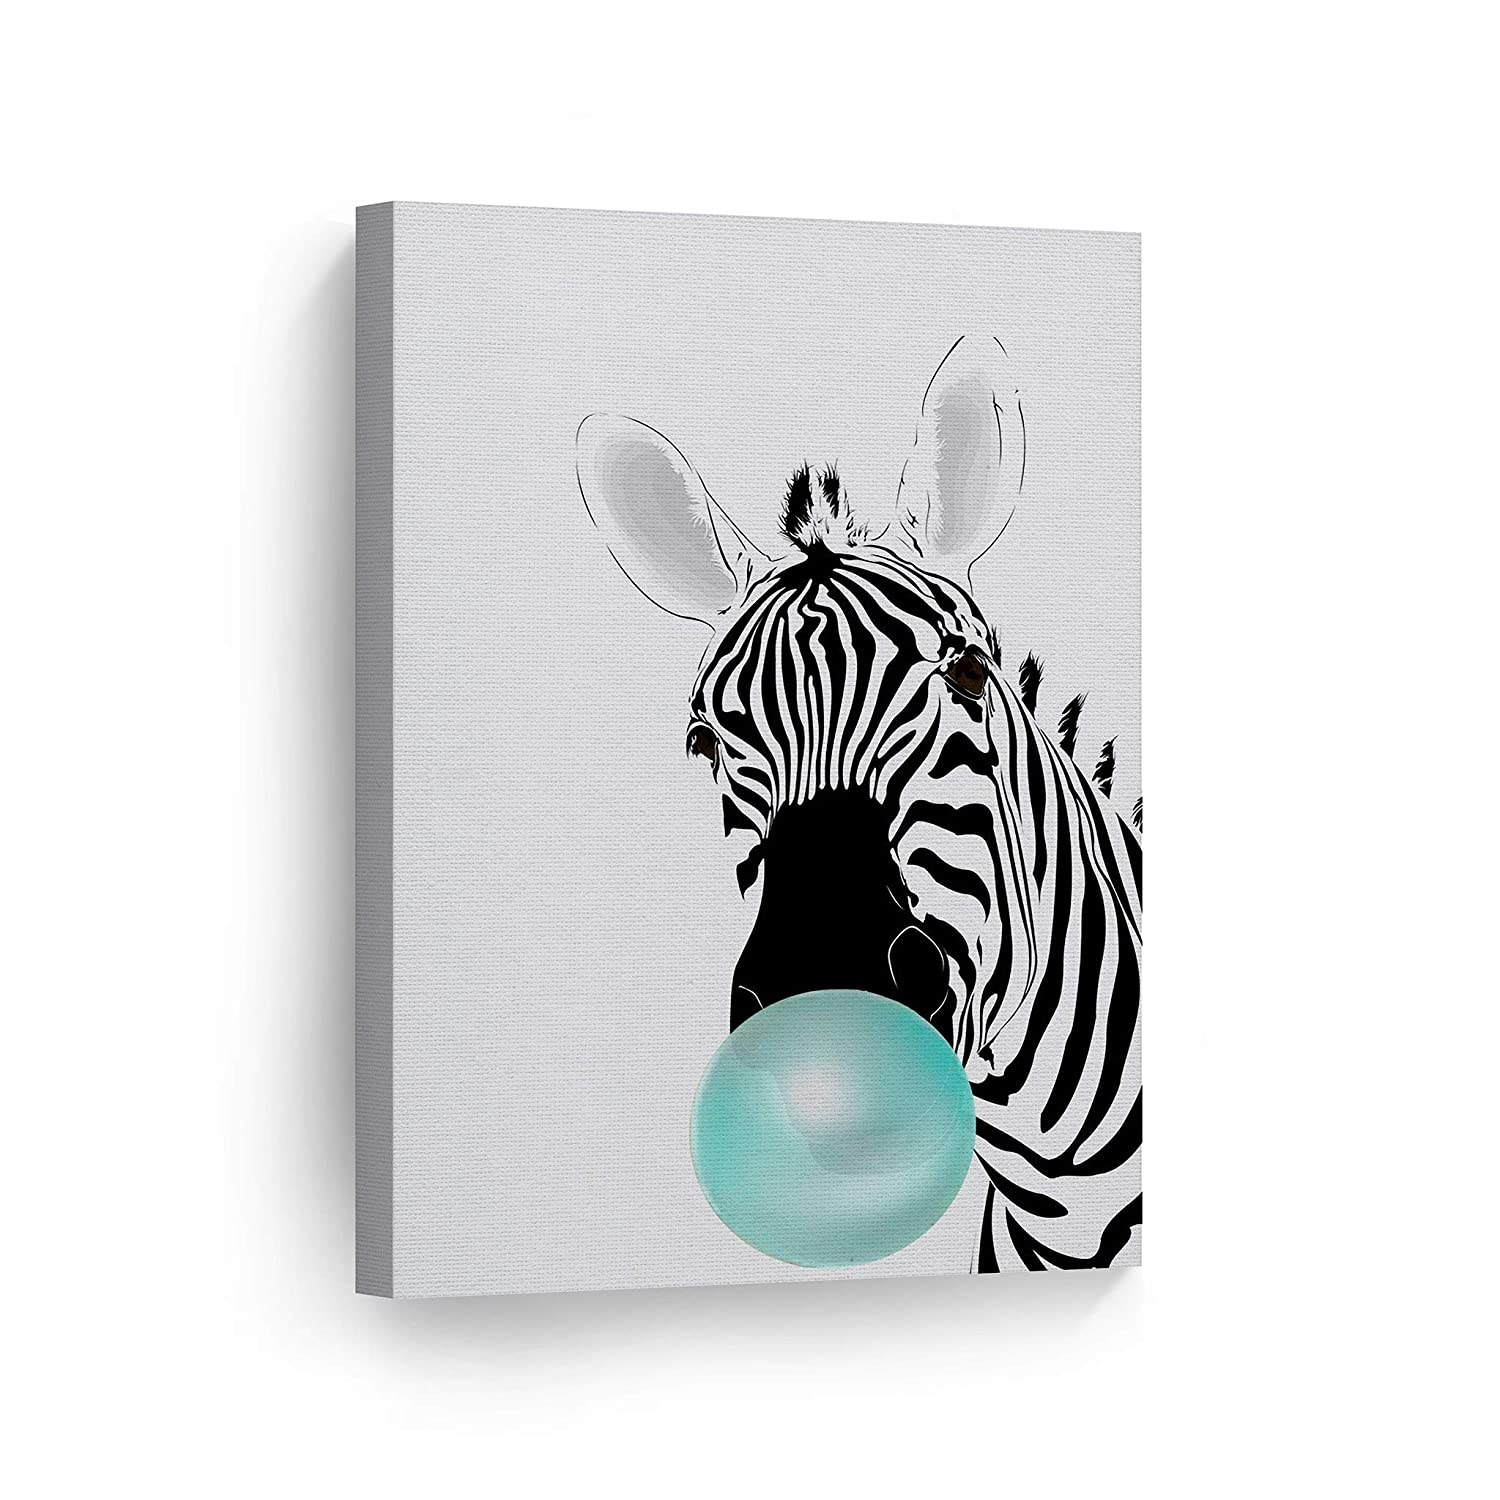 Zebra Animal Bubble Gum Art Teal Blue Chewing Gum Canvas Print Black and White Wall Art Home Decoration Pop Art Living Room Kids Room Decor Nursery Ready to Hang-%100 Handmade in USA - 12x8